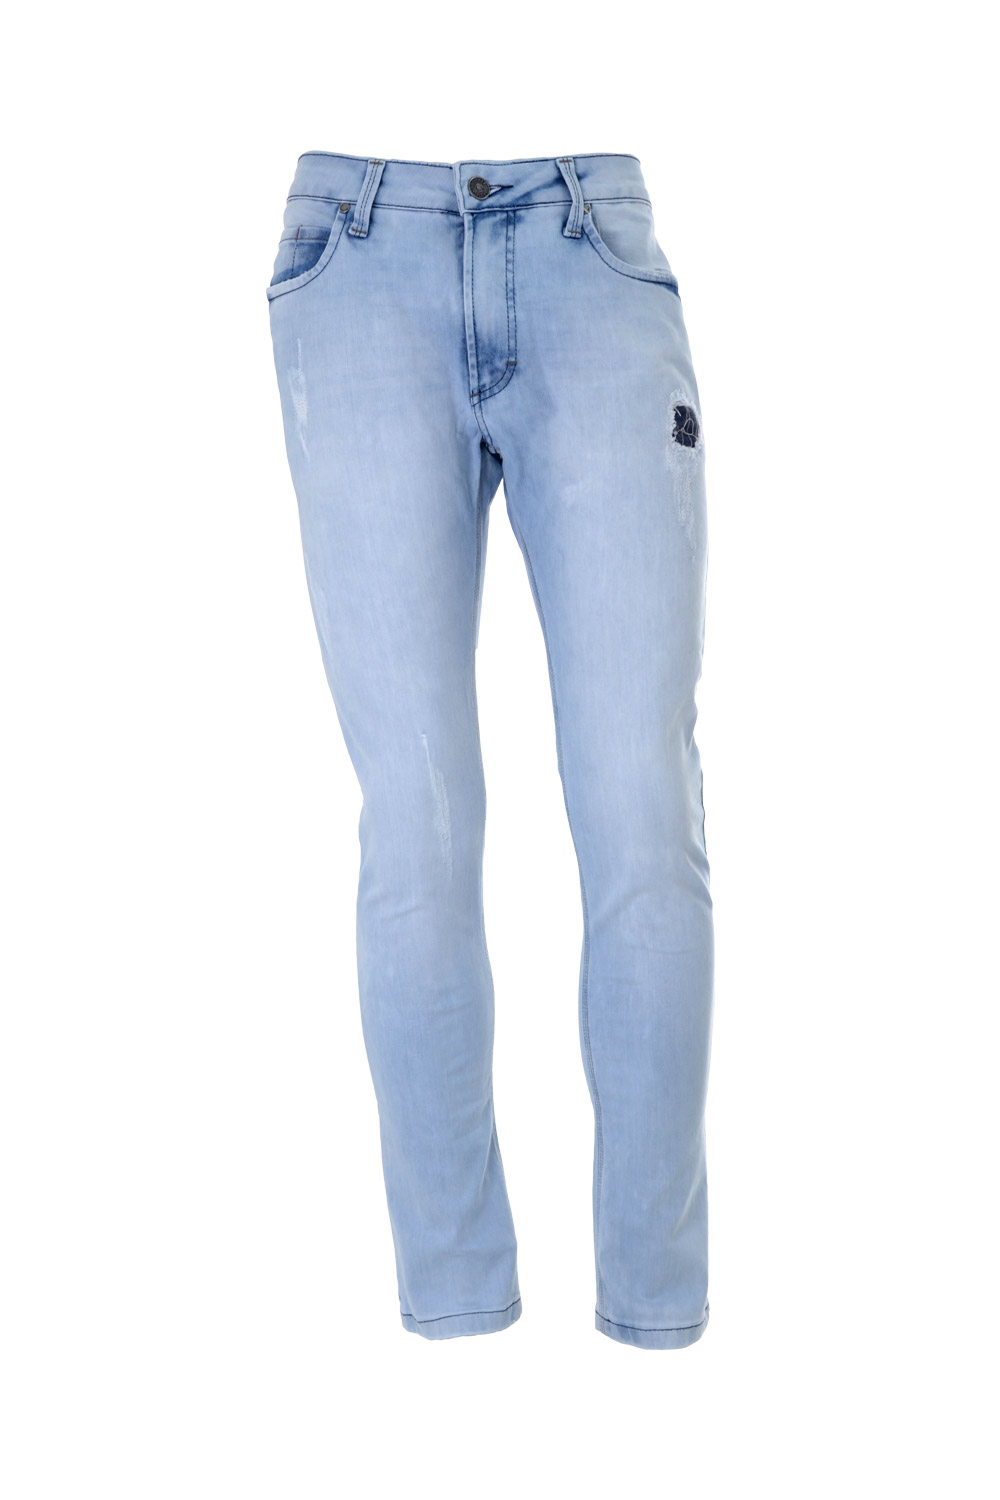 CALÇA JEANS BLUES ALGODAO & ELASTANO 5 POCKETS STONED SKY BLACK